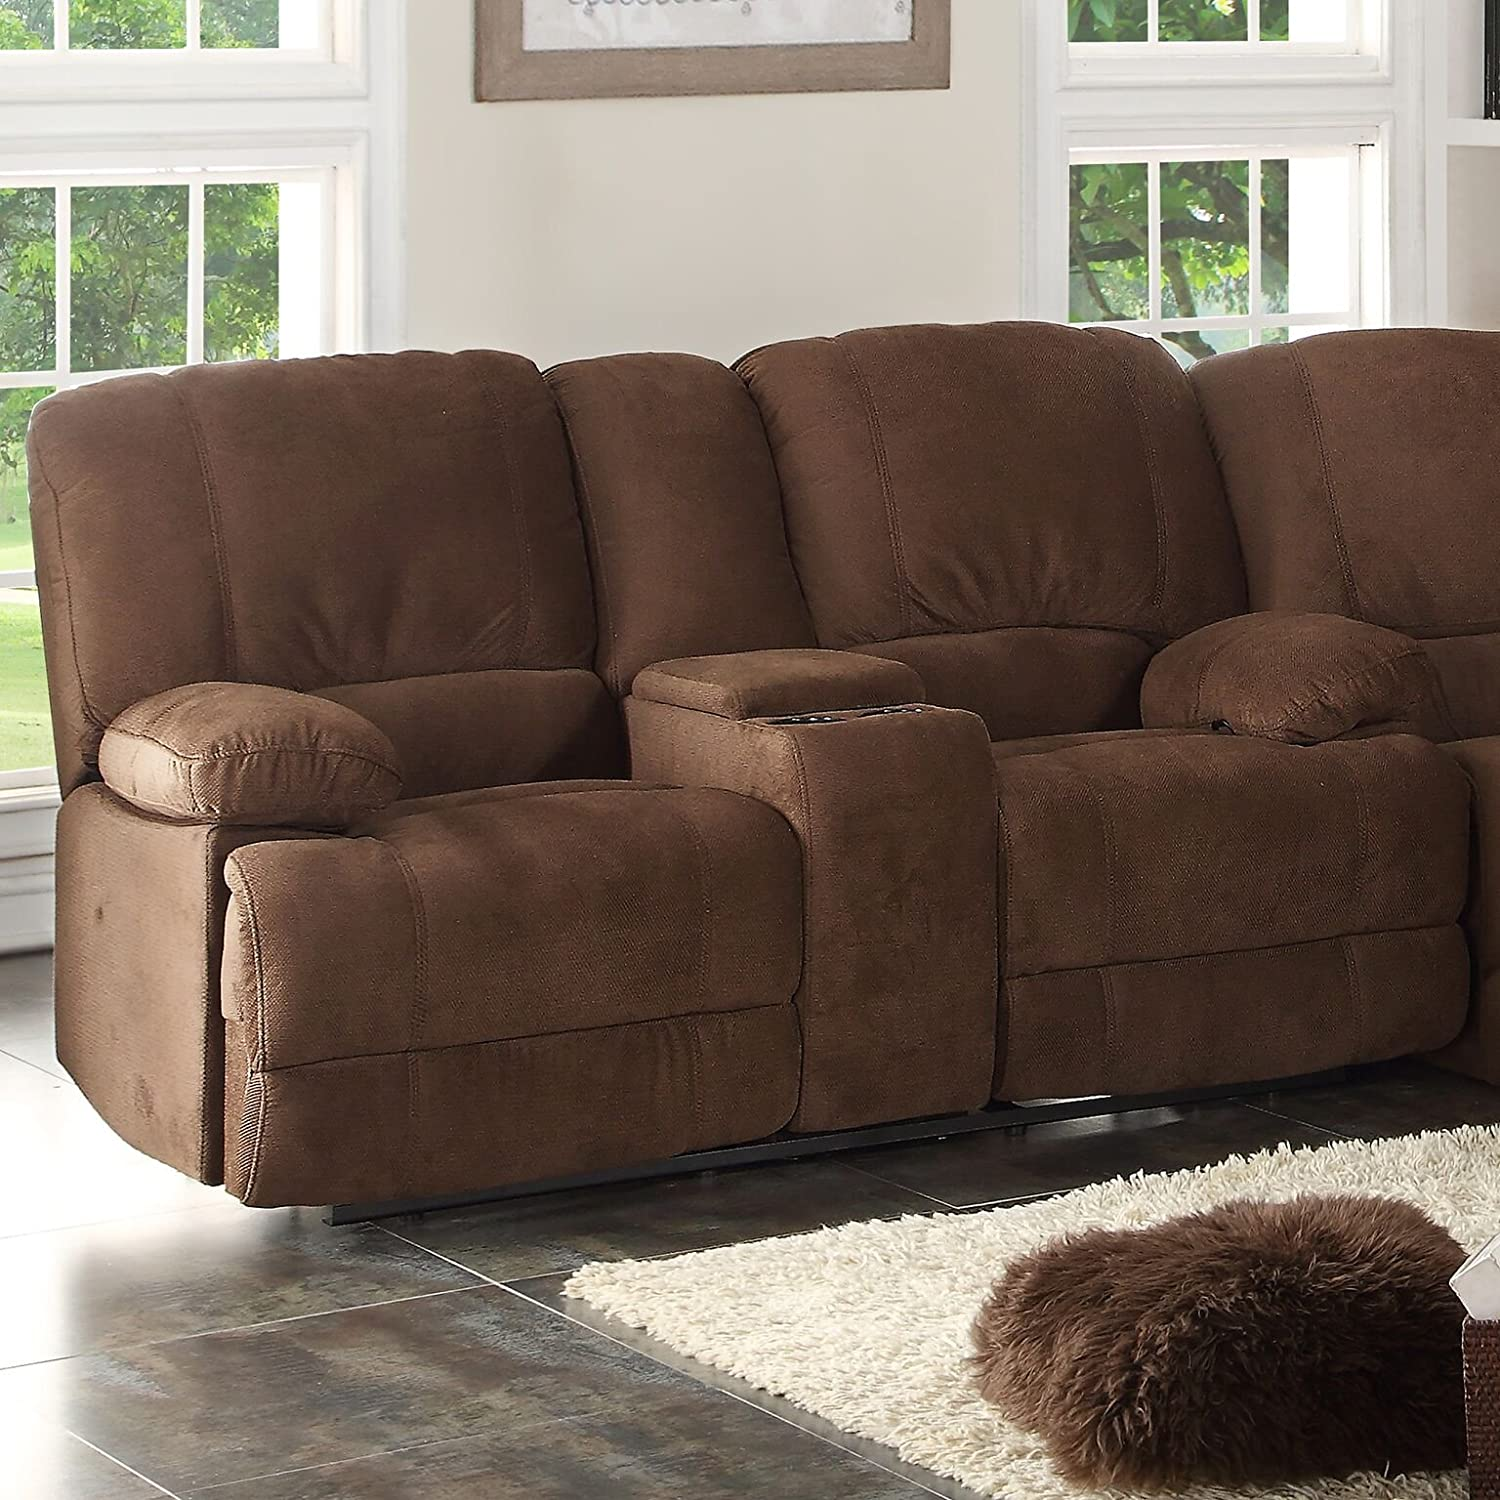 sofa city furniture chaise loveseat package packages set marisol product living room and value beige